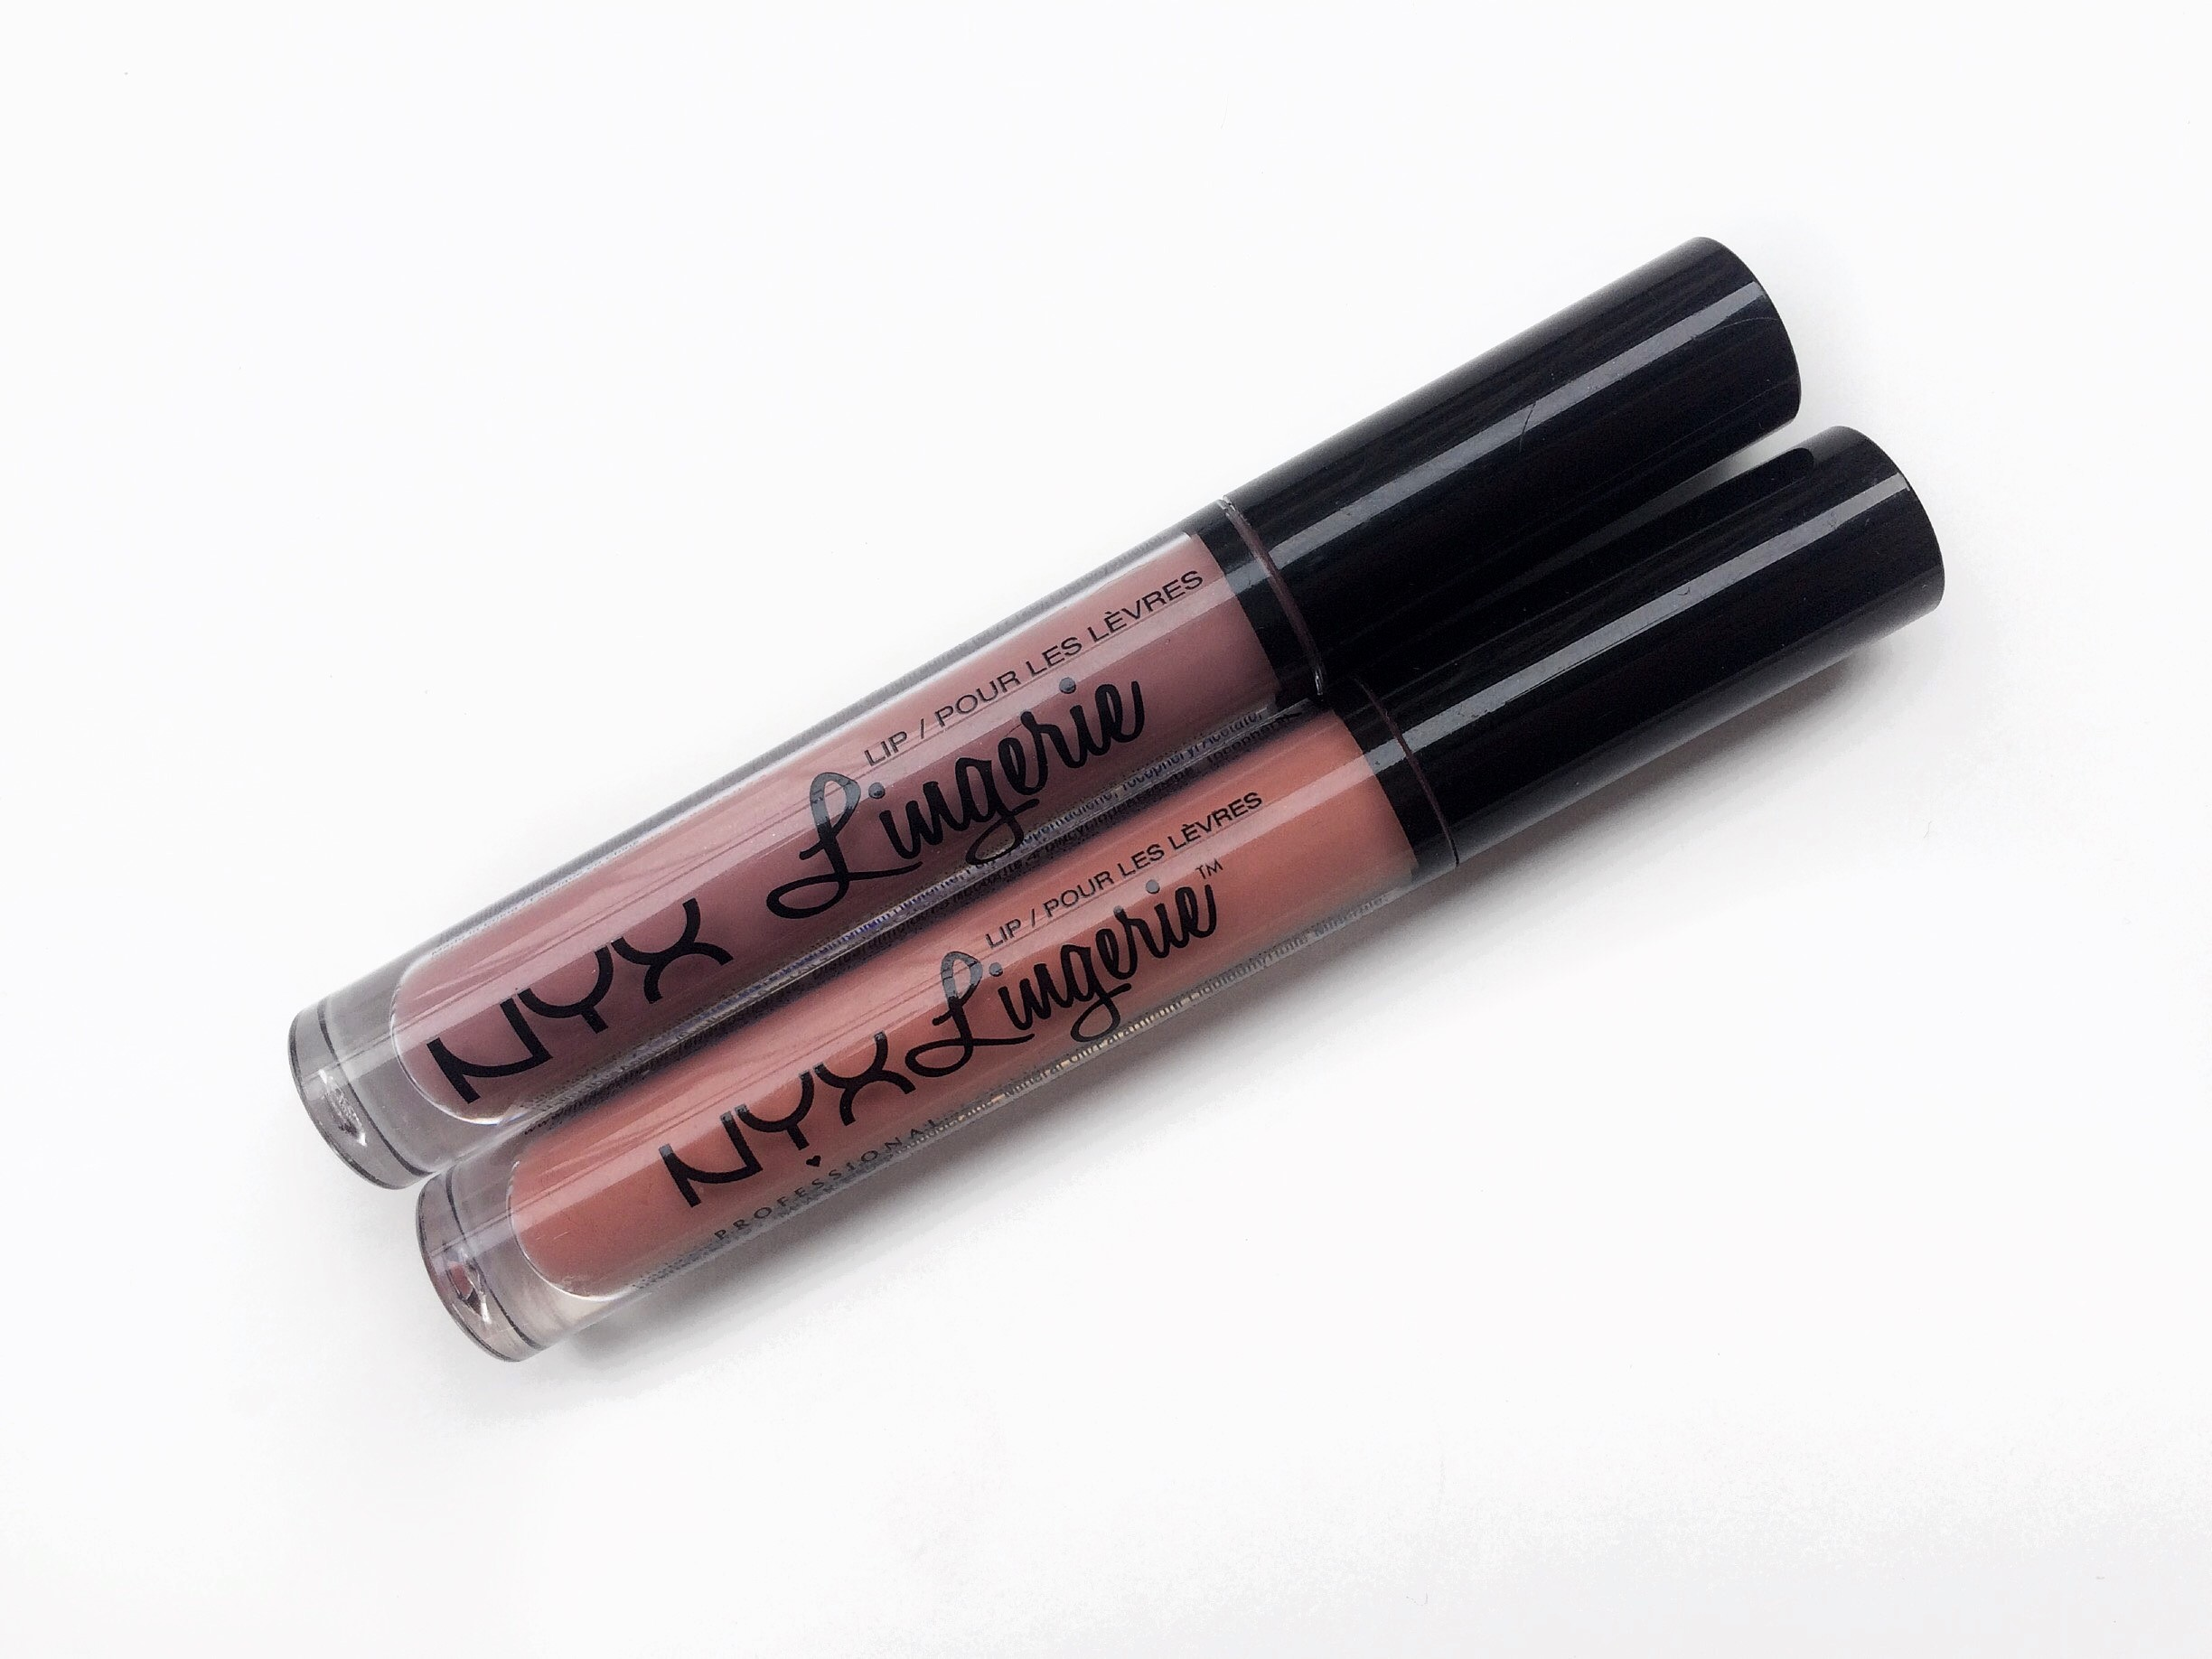 NYX Embellishment, Bedtime Flirt Lip Lingerie | Review